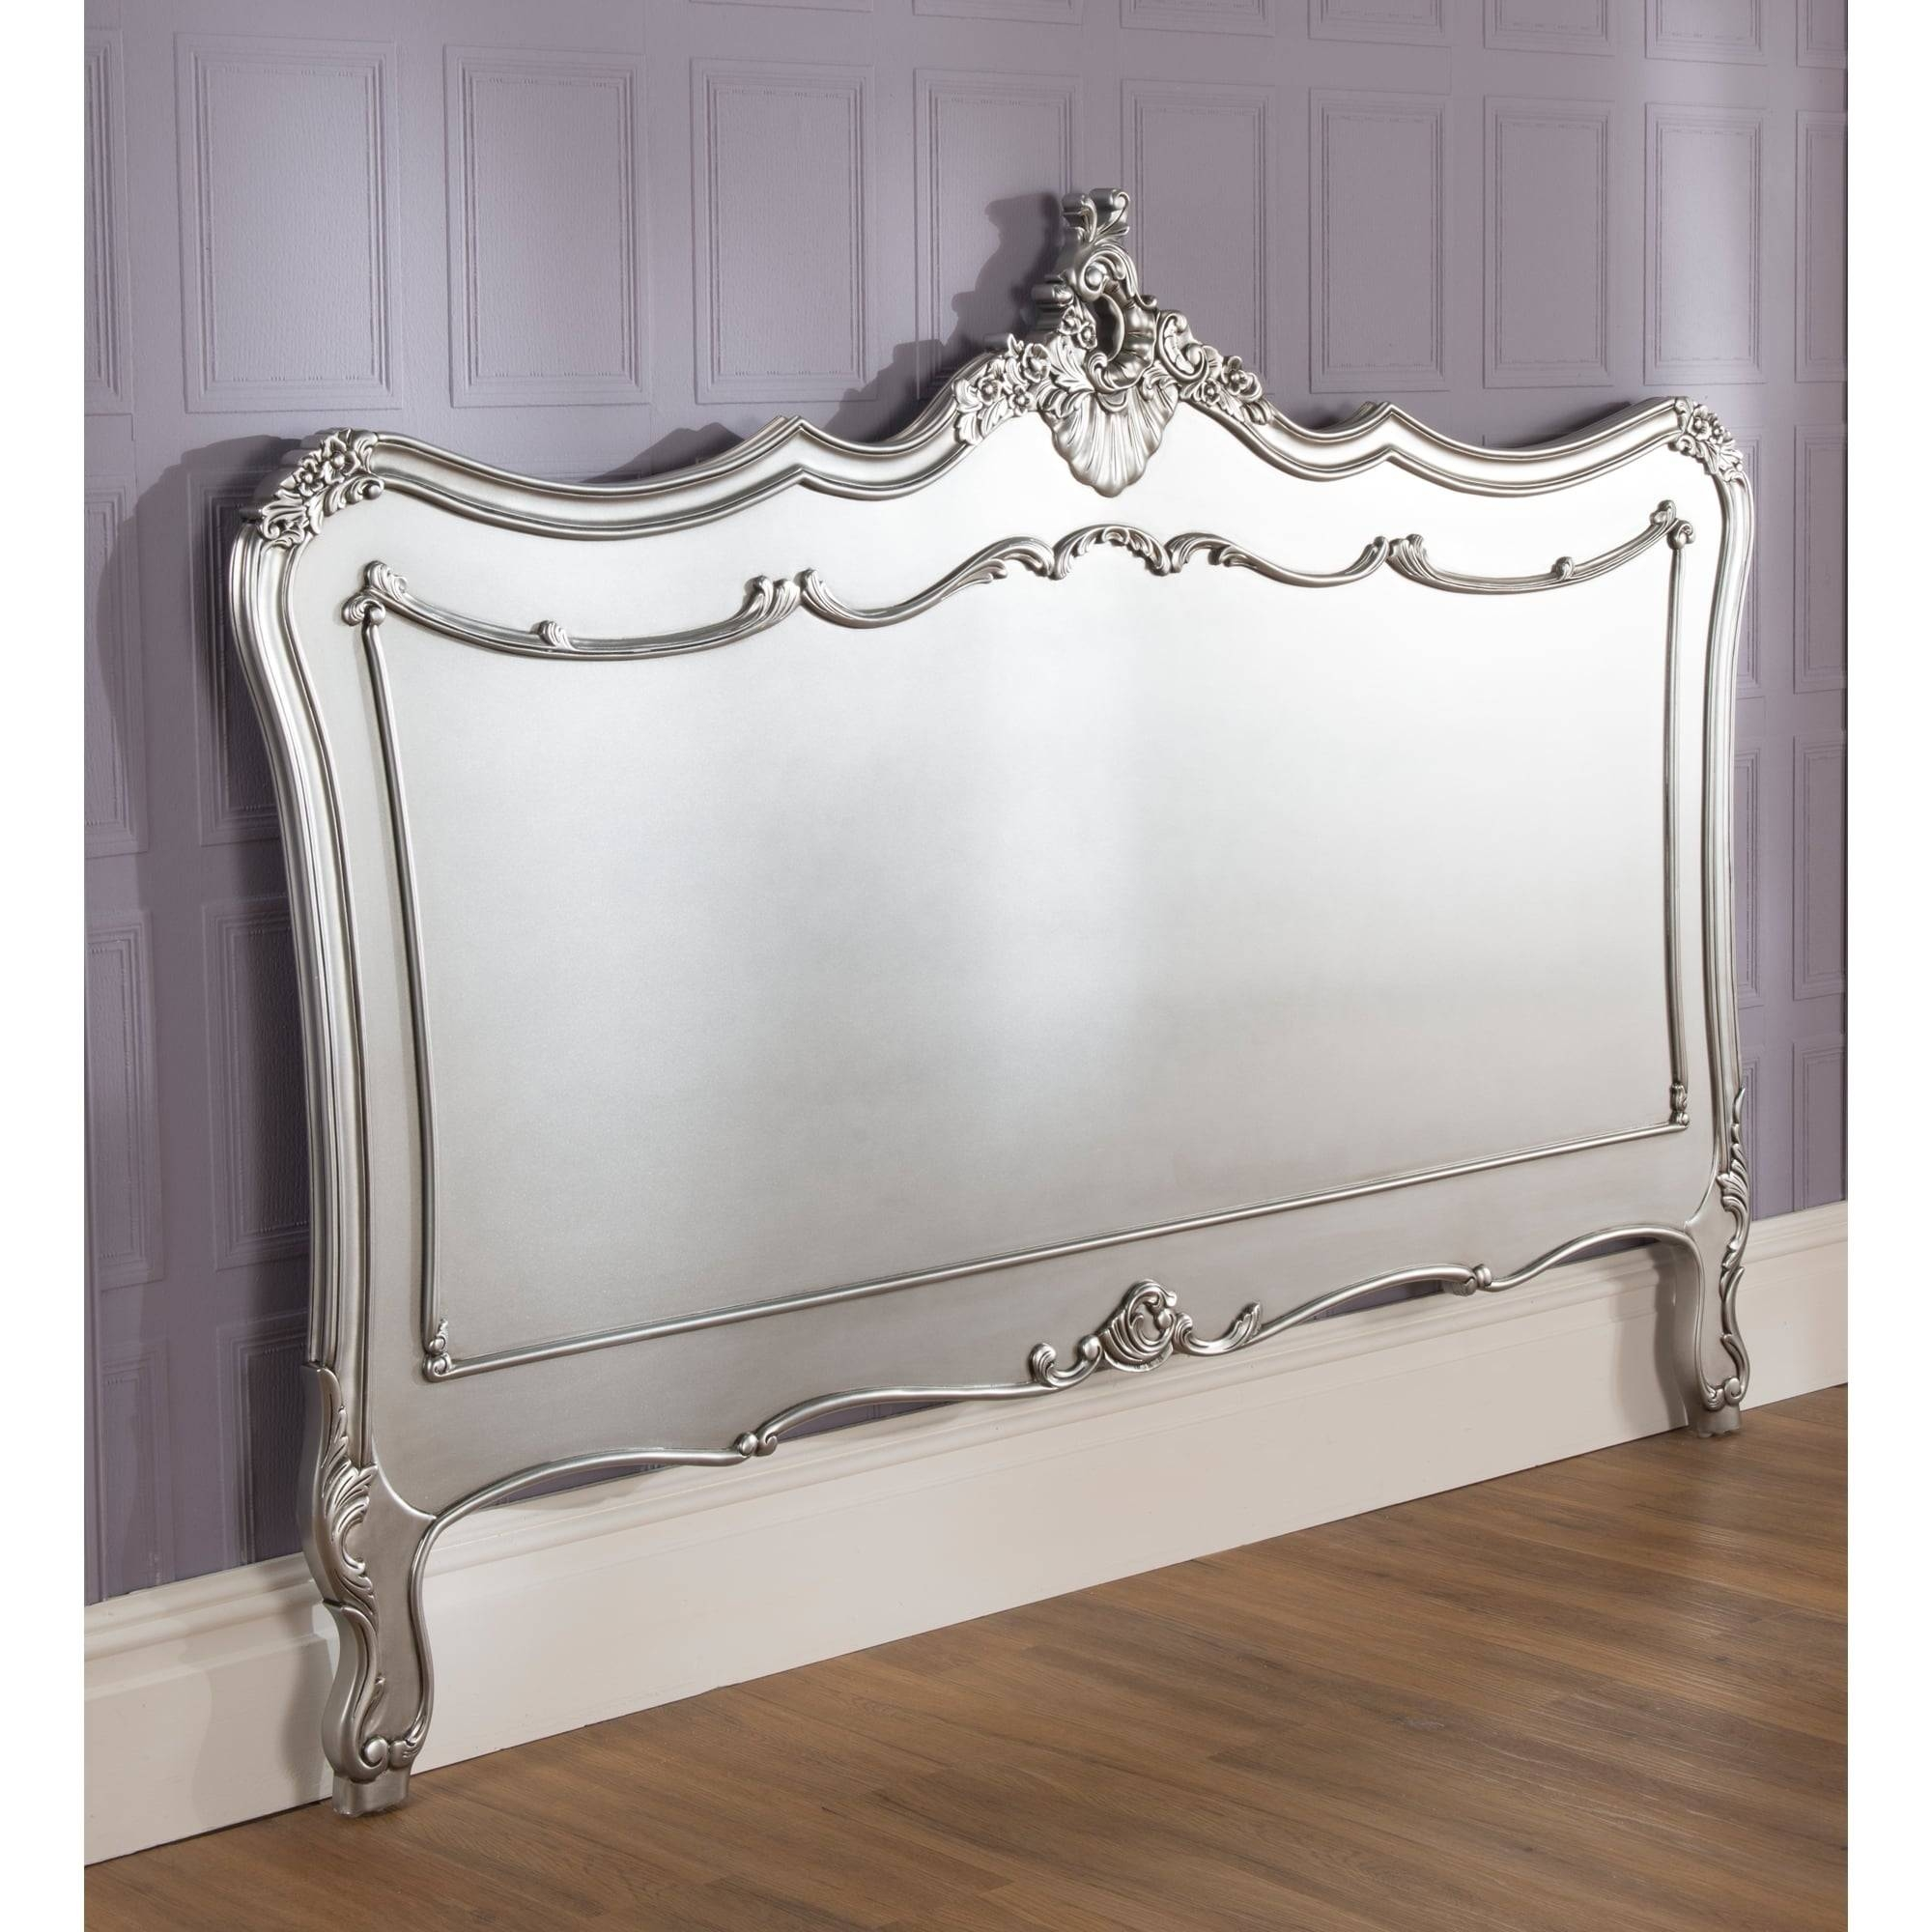 Bed Headboards, Buy Bed Headboards, Bed Headboards Online, Buy Bed Within French Inspired Mirrors (View 4 of 15)